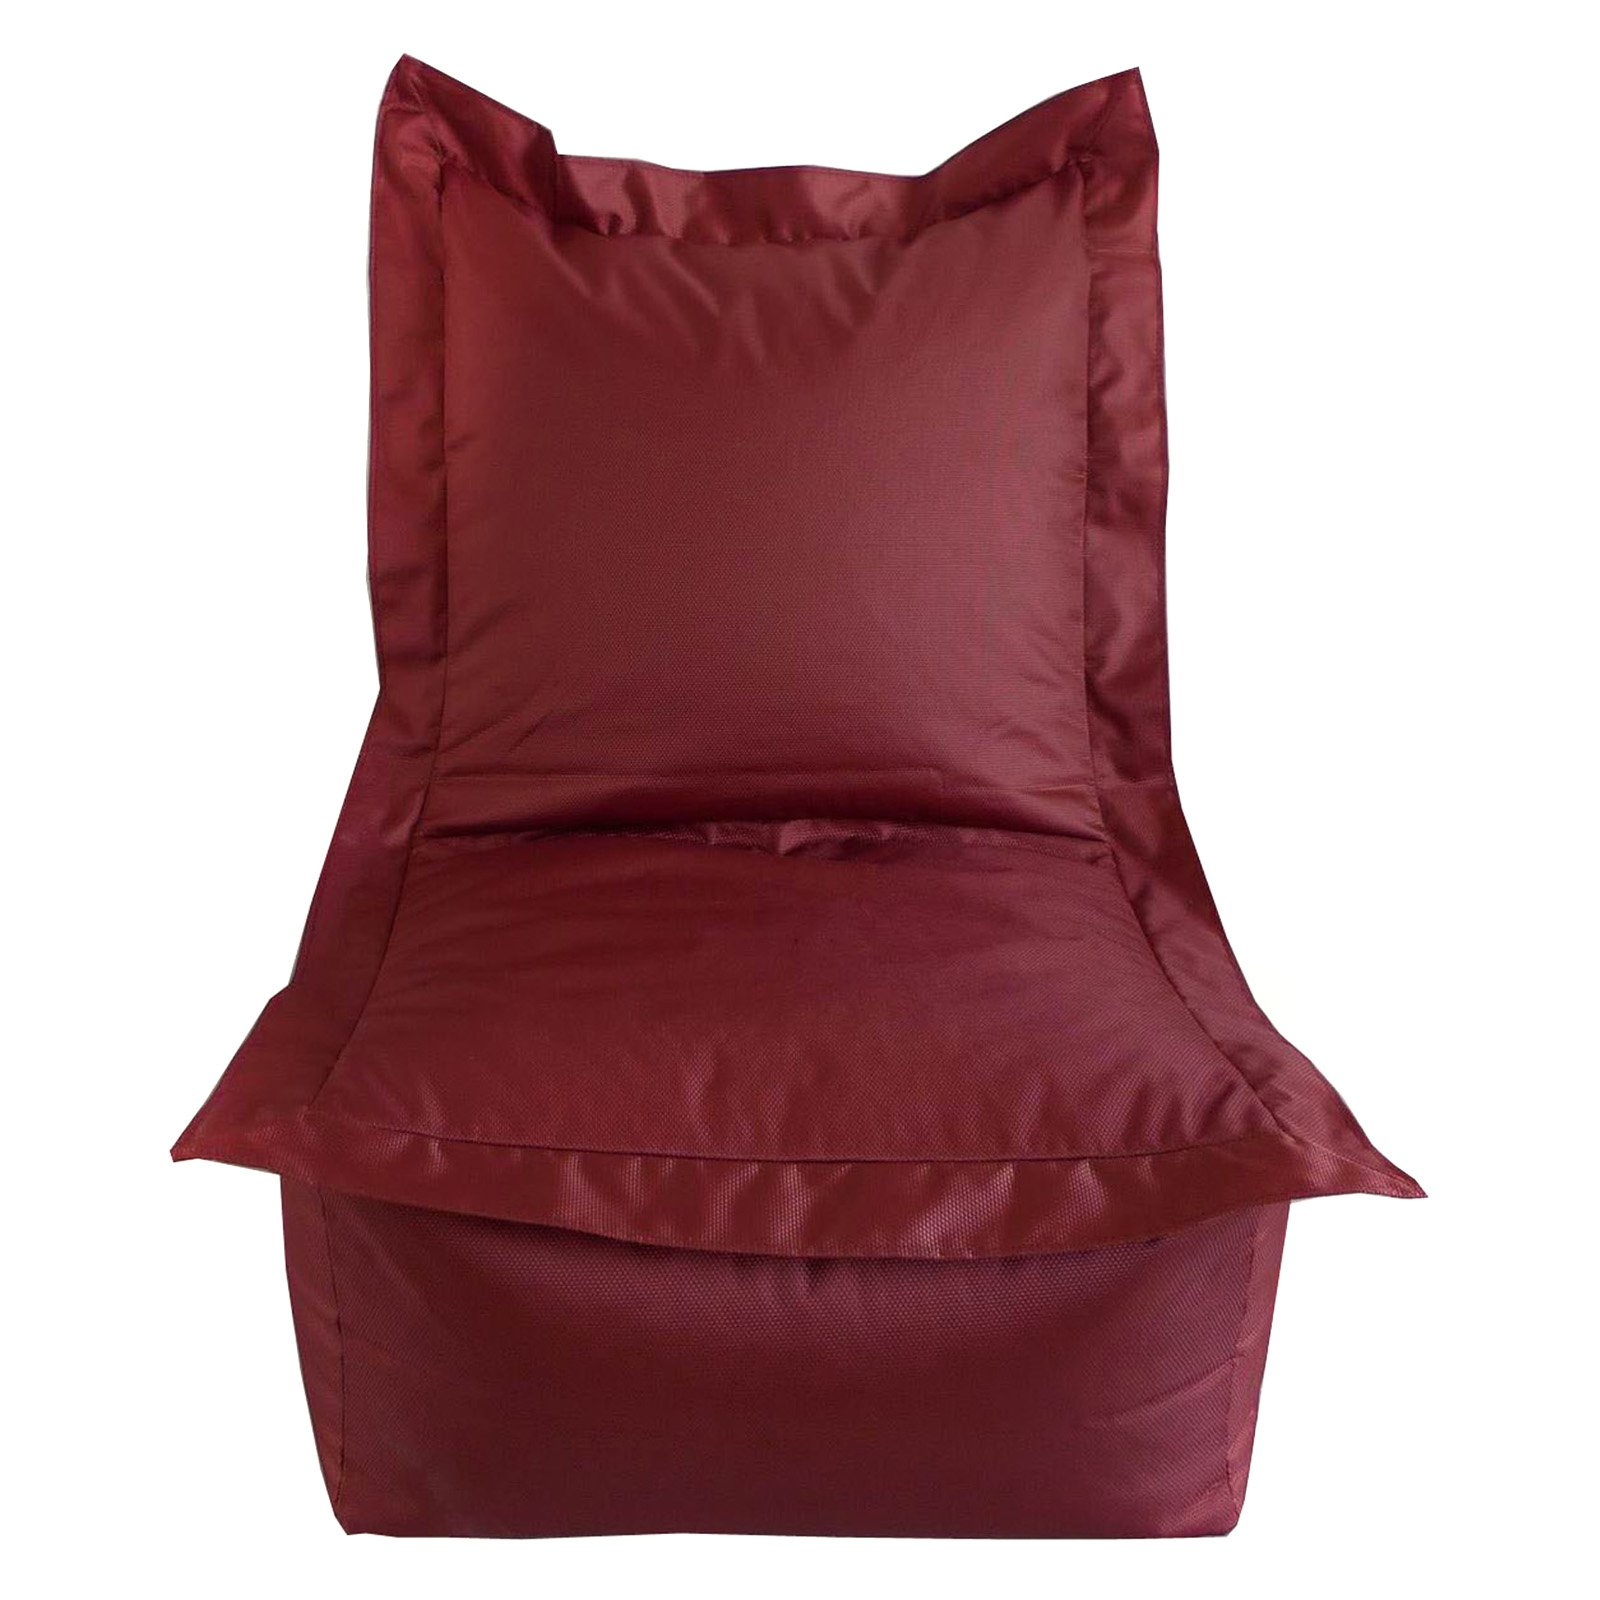 Outdoor Bean Bag Lounger, Multiple Colors